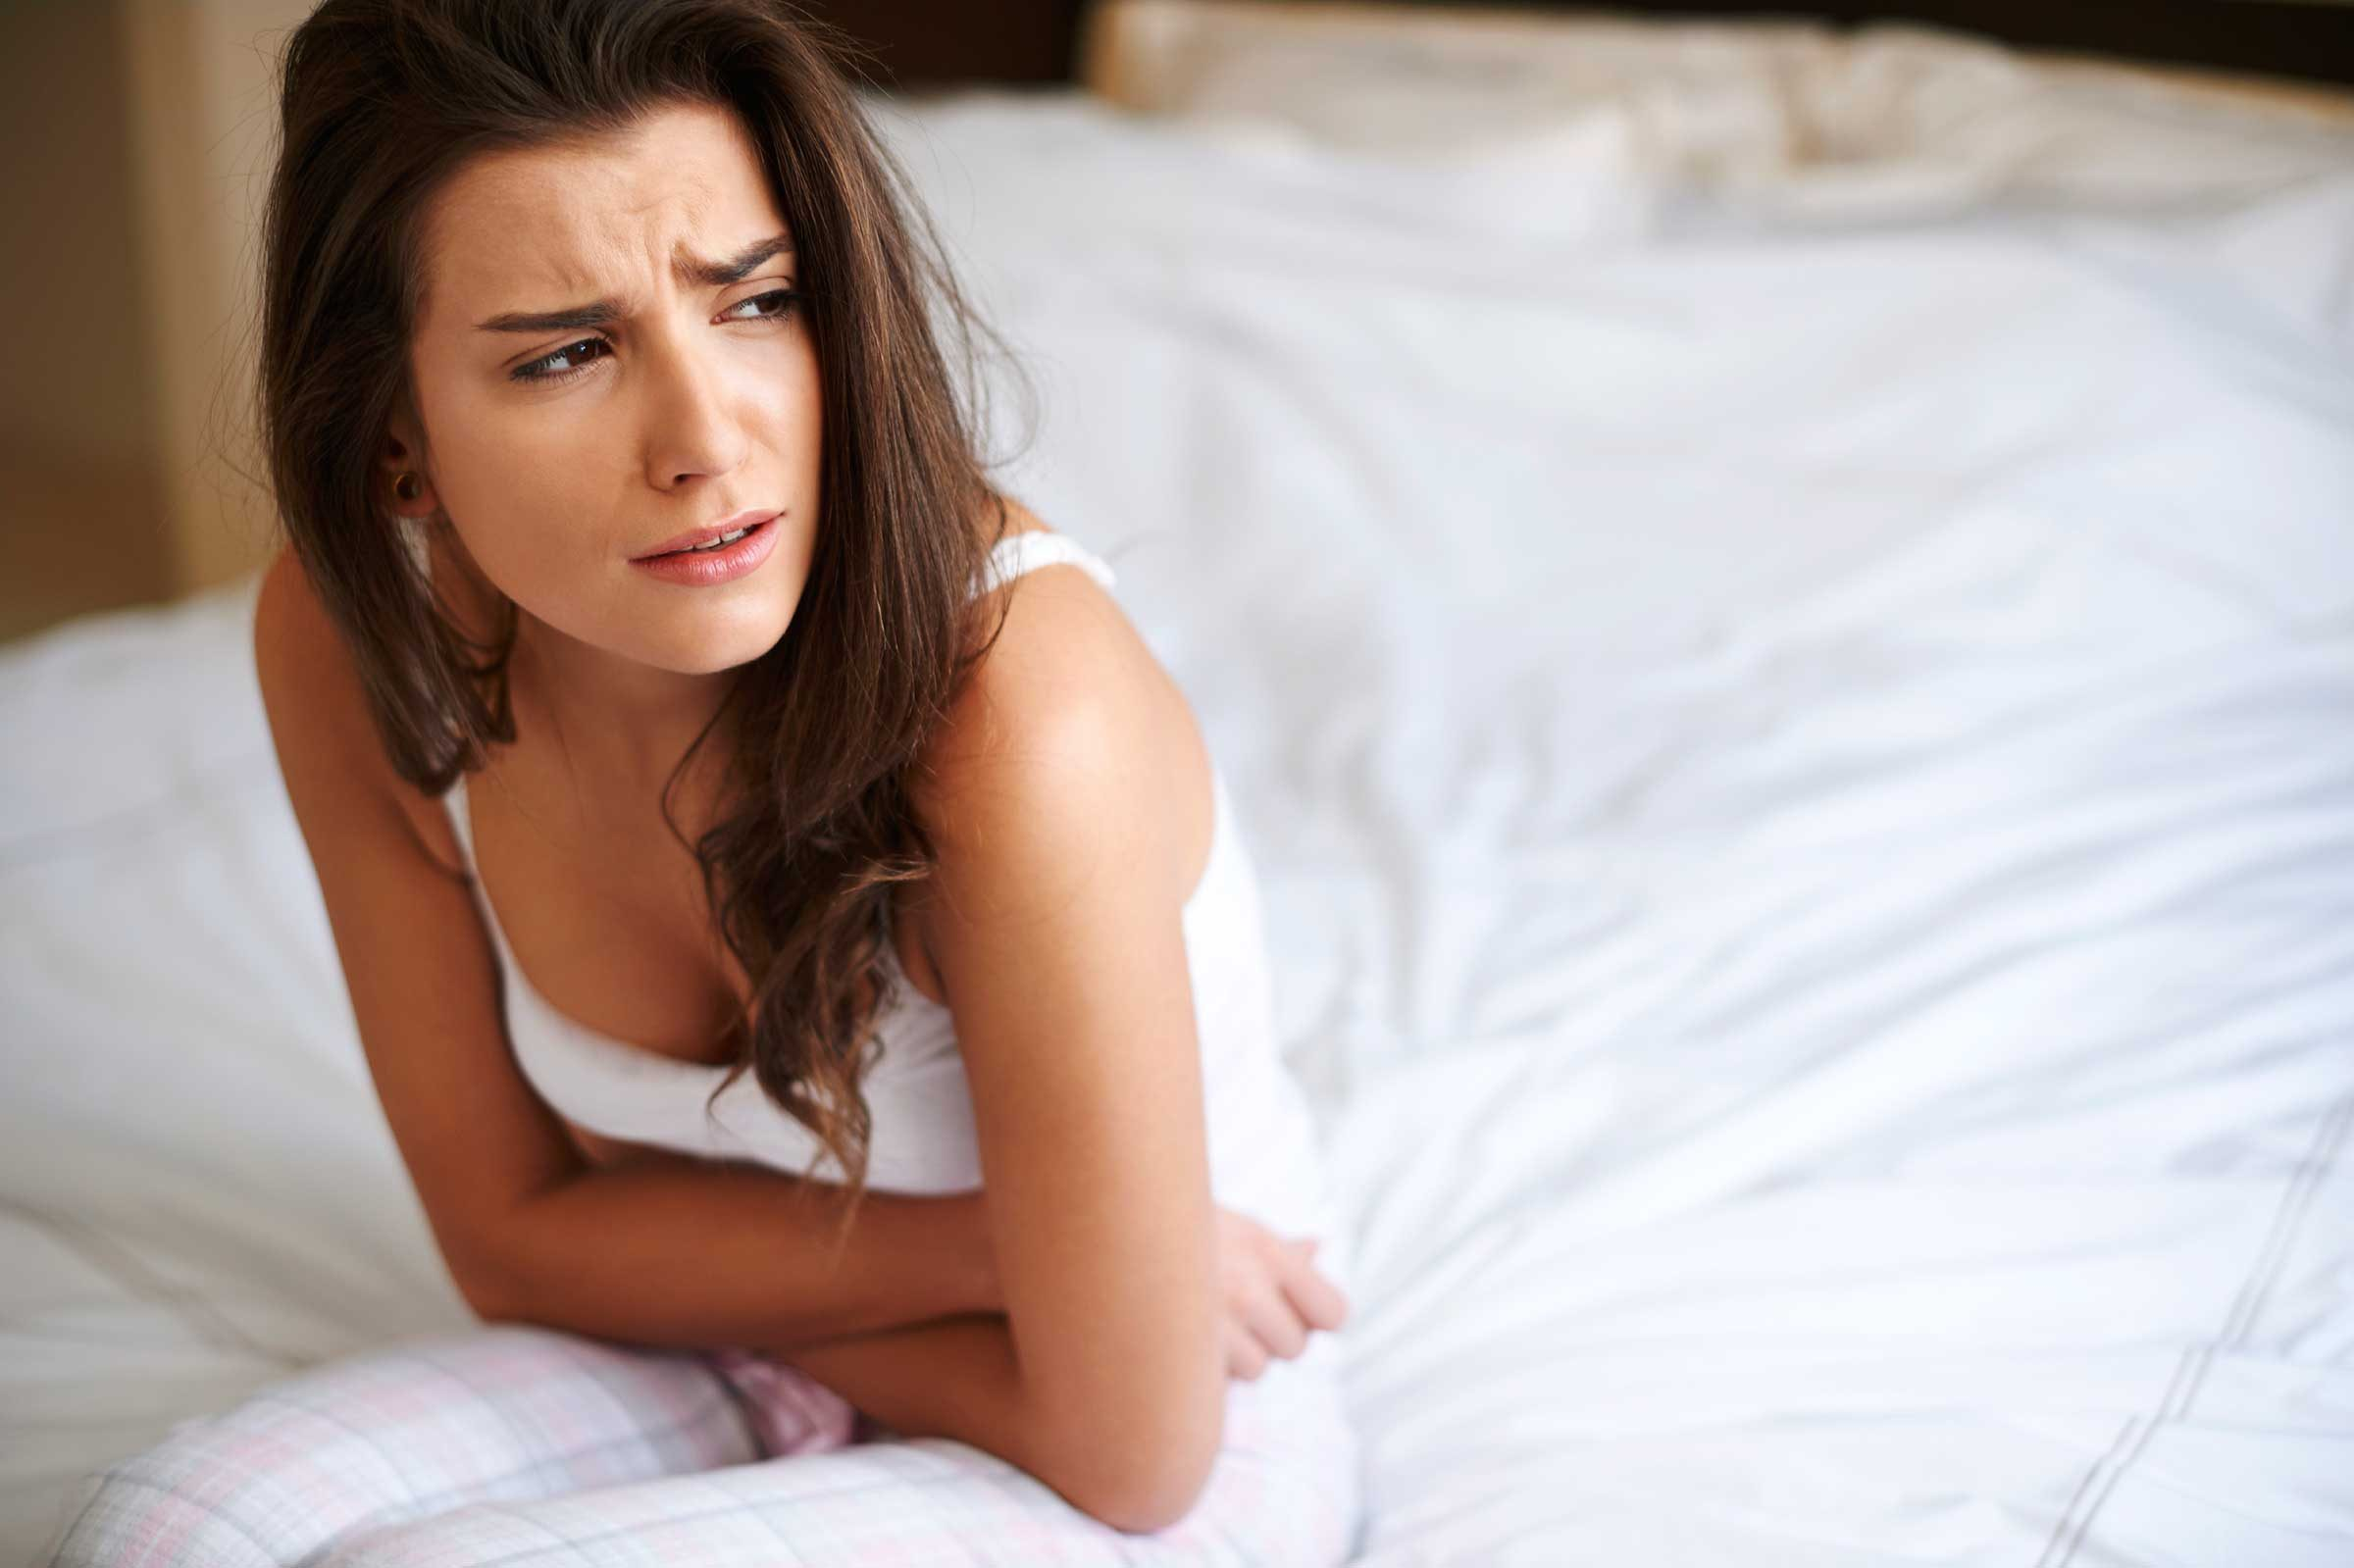 Your menstrual cycle can be persnickety